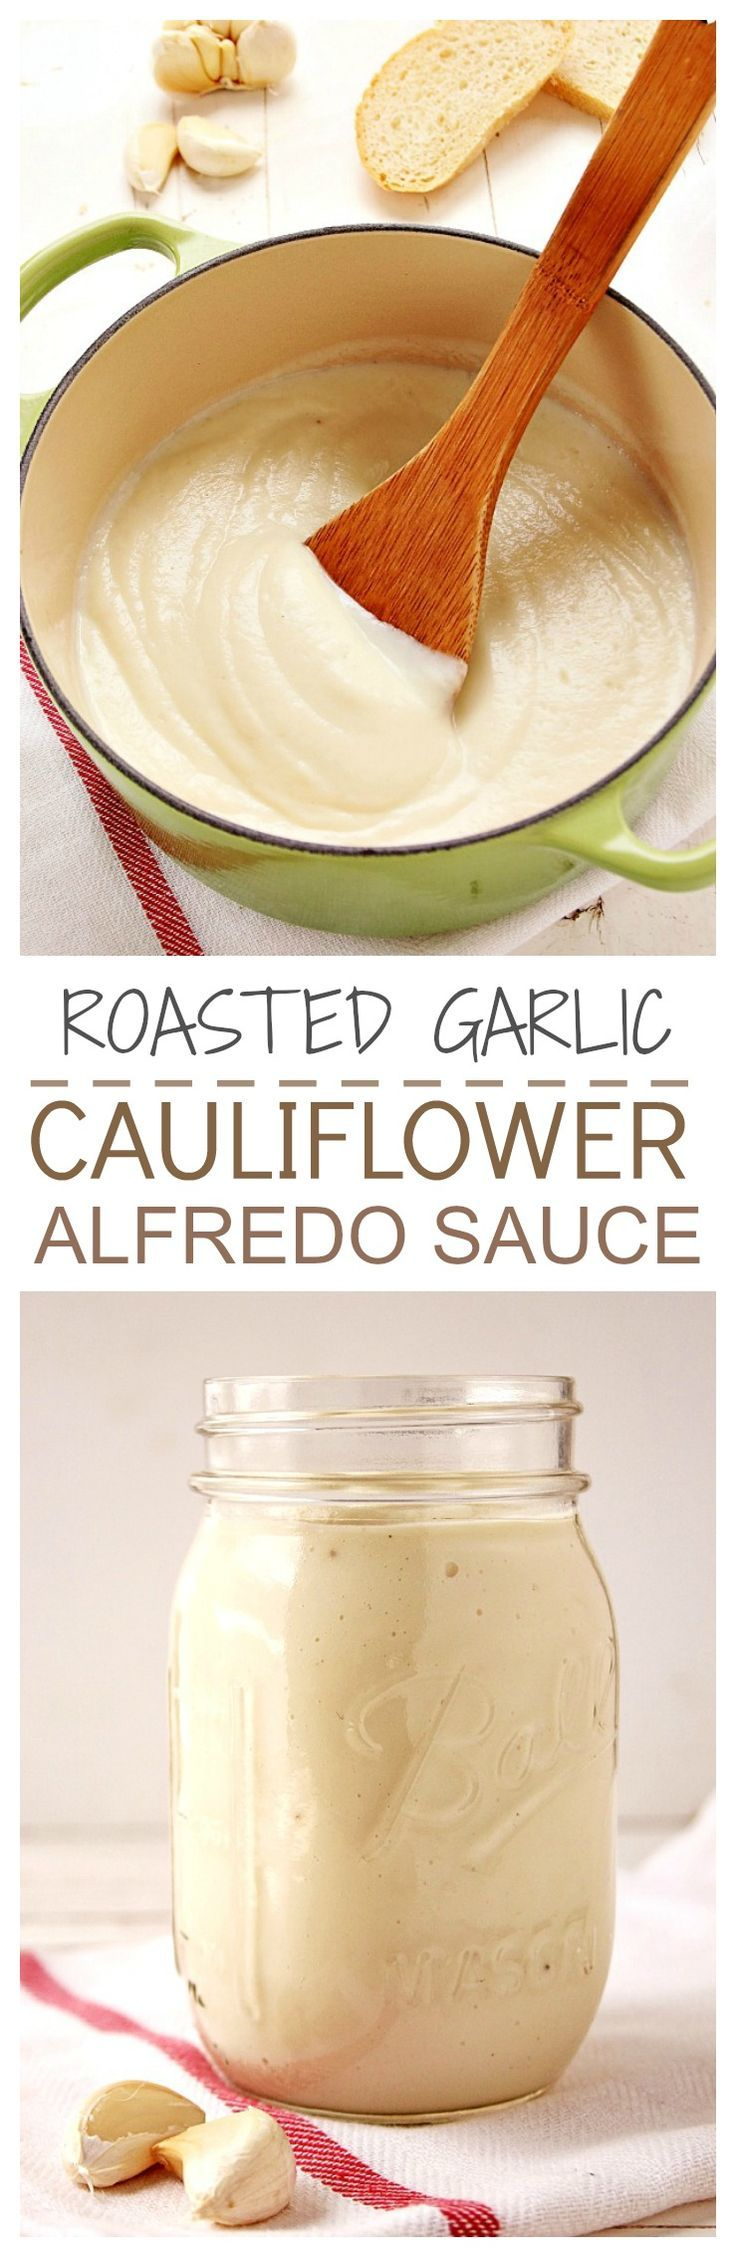 Healthy sauce made with cauliflower and roasted garlic with an addition of Parmesan. We can't stop eating it! Great on pasta and